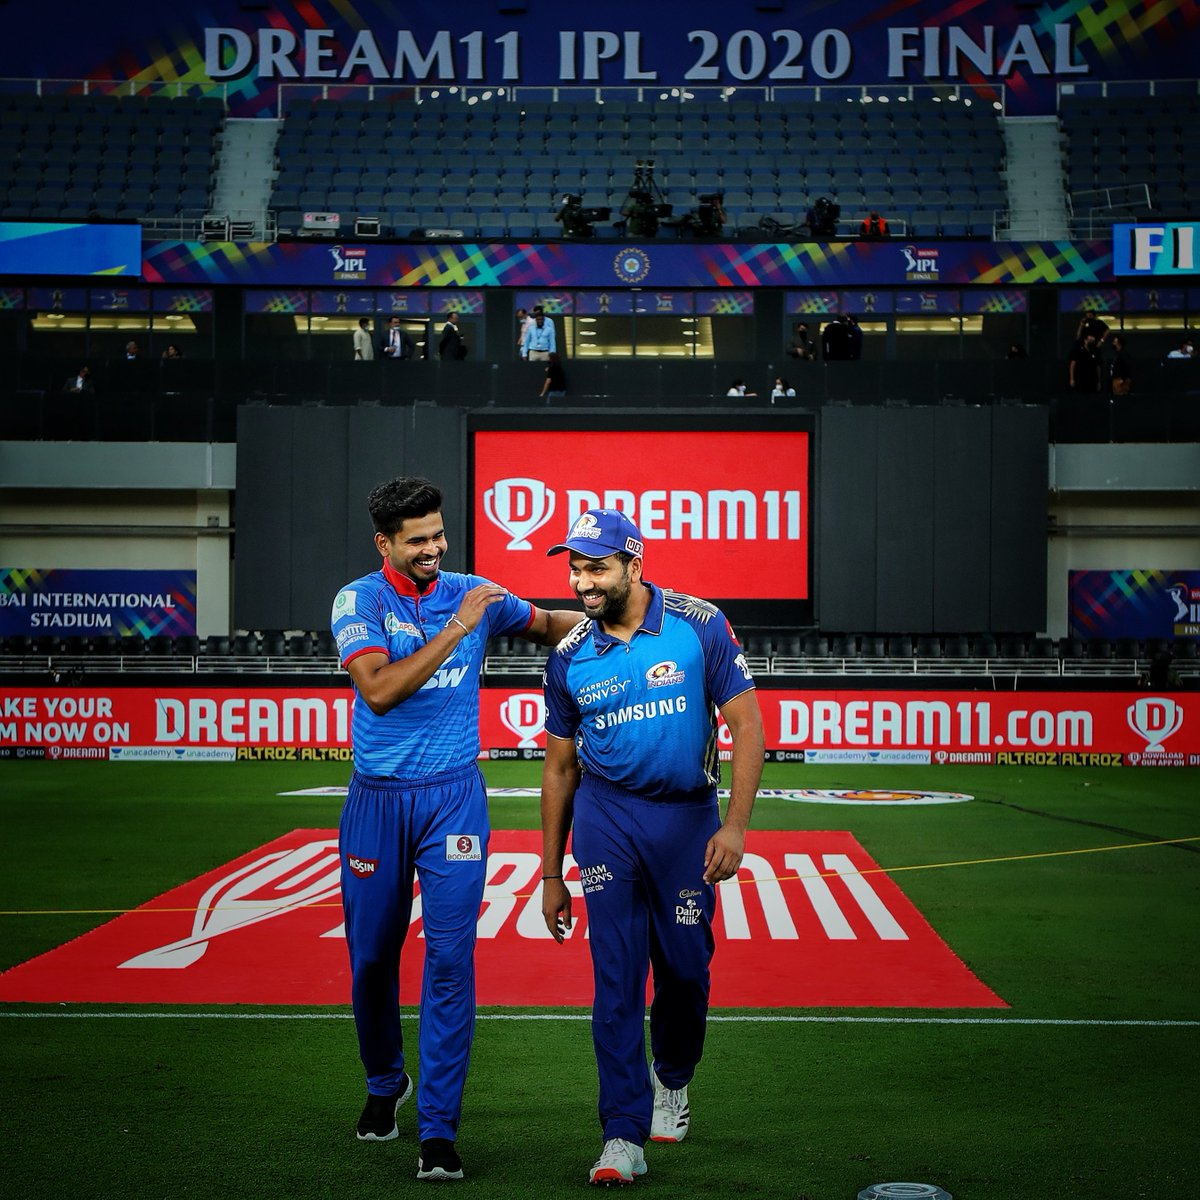 Congratulations @mipaltan on your 5th @IPL trophy 🏆  A well-deserved title 👏  #MIvDC #IPLFinal #Dream11IPL #YehHaiNayiDilli